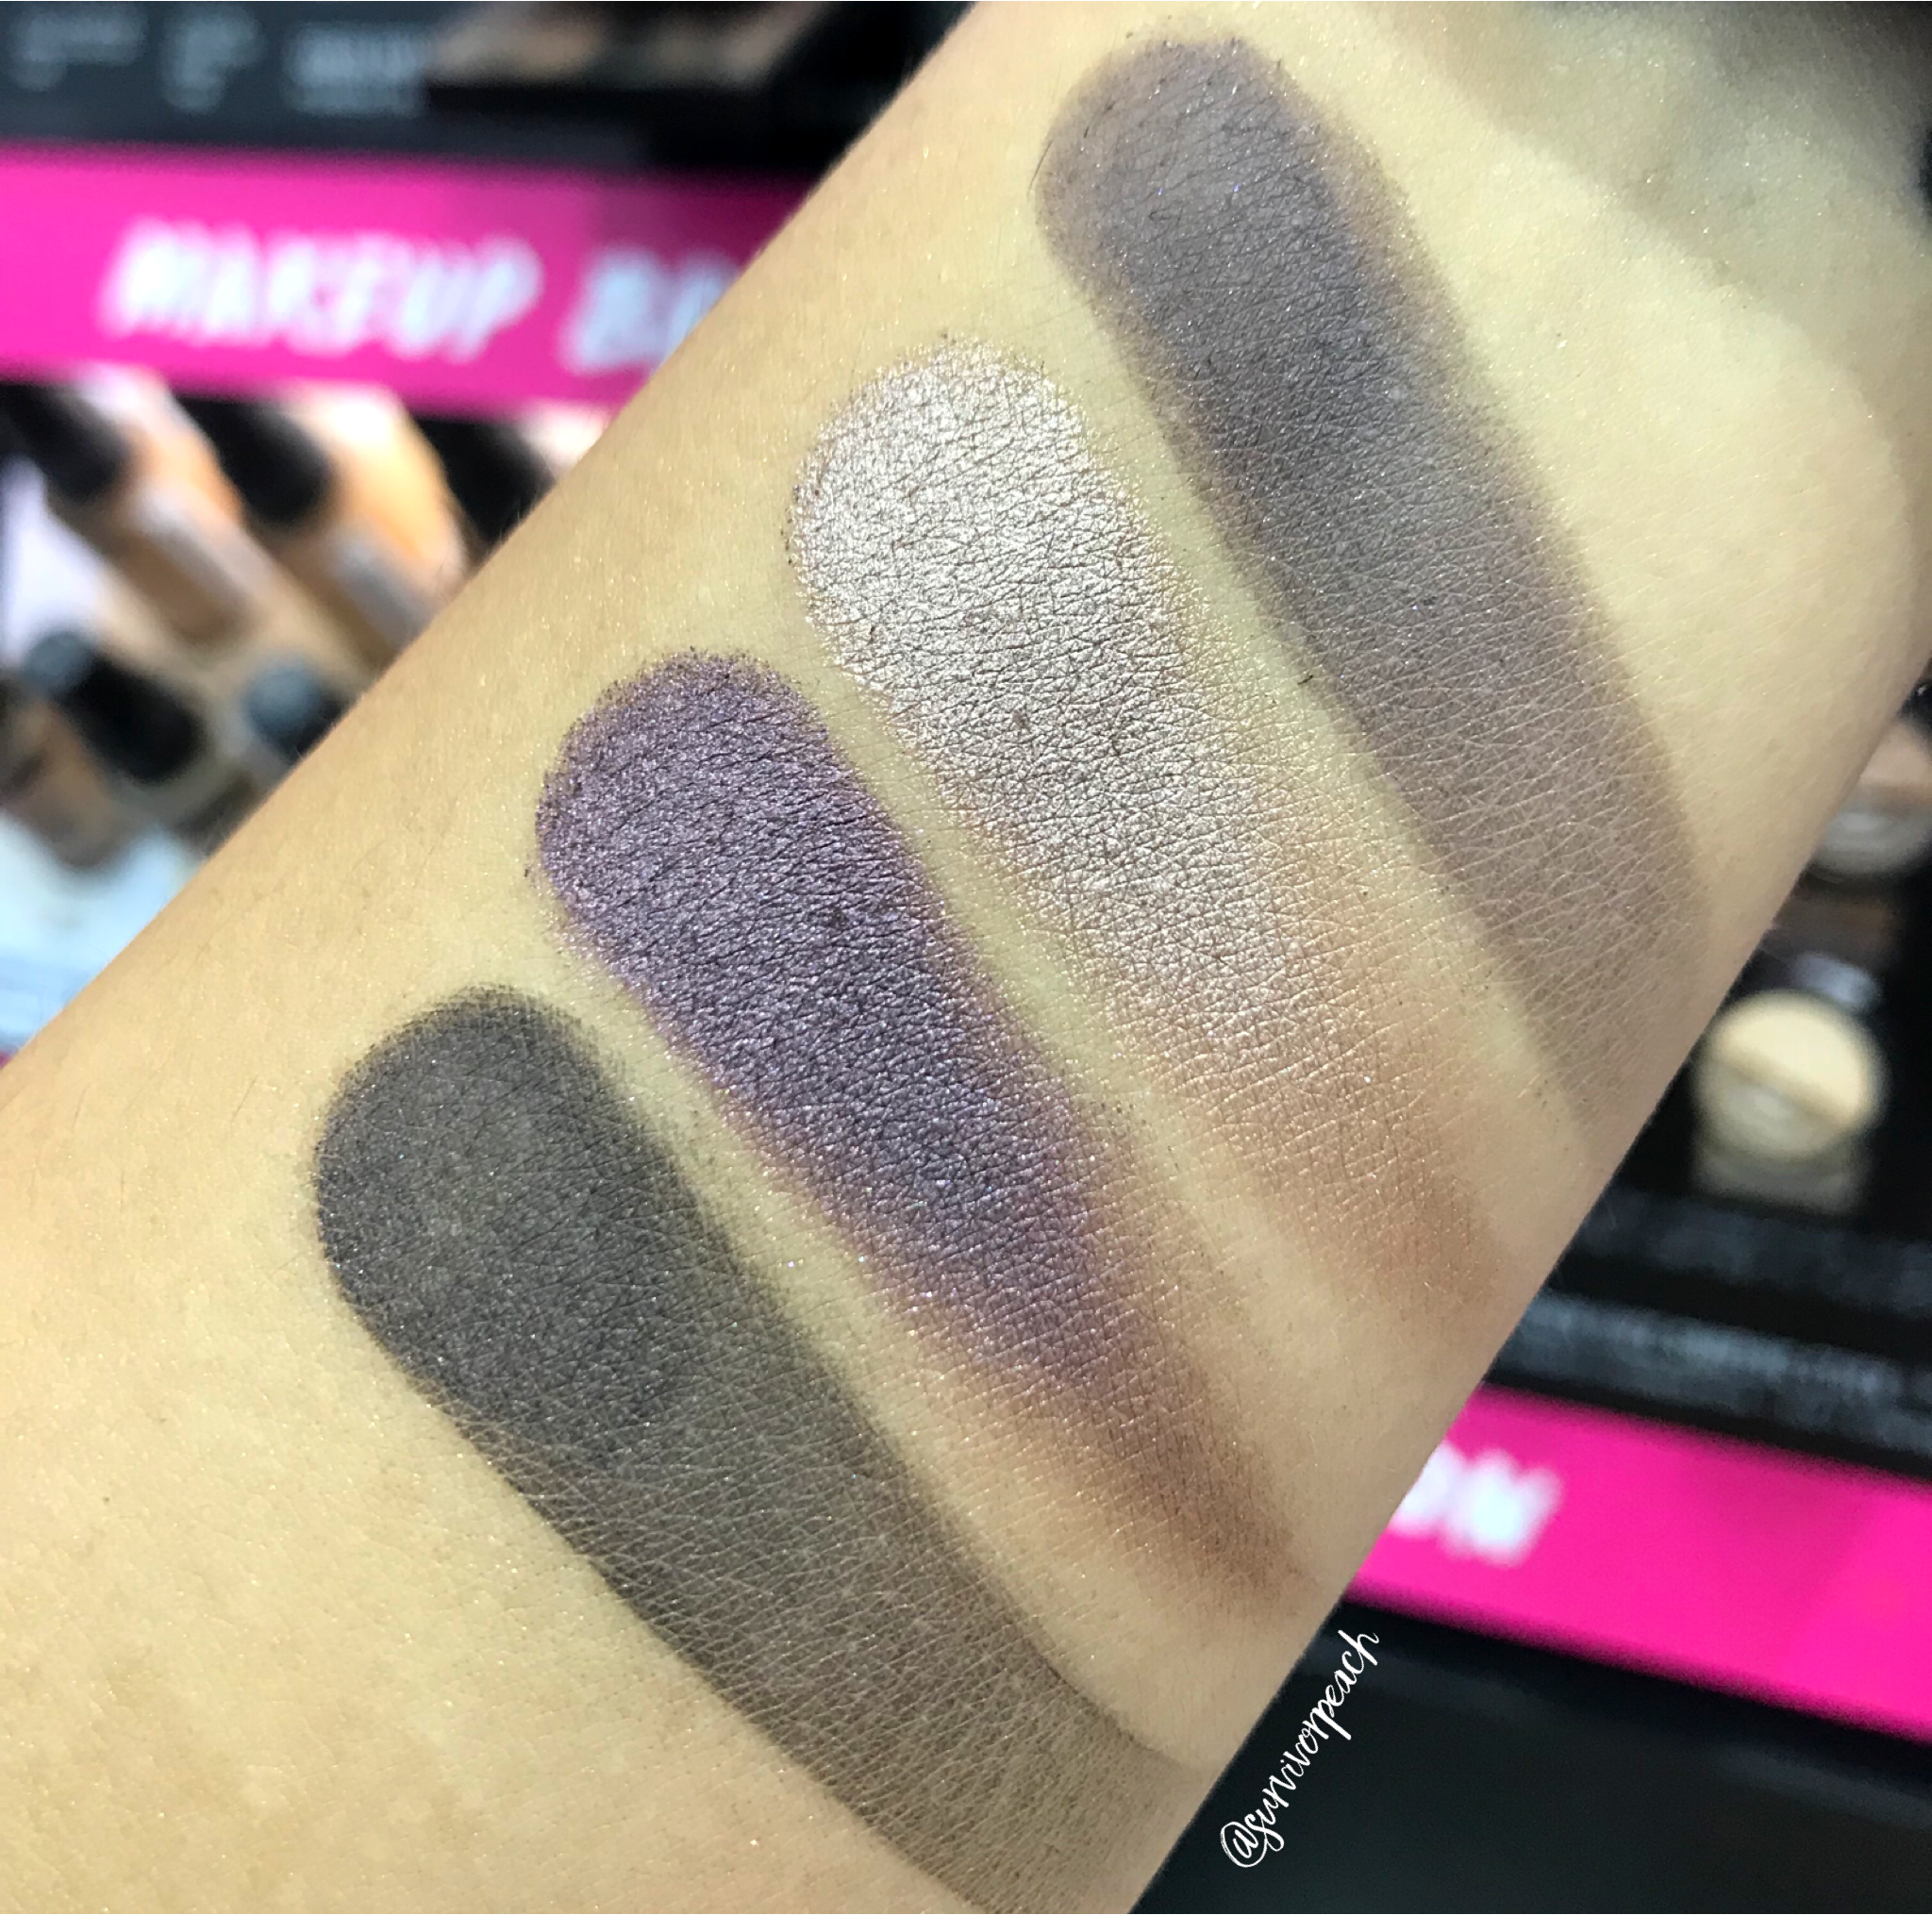 Swatches of the Smashbox Covershot palette: Punked